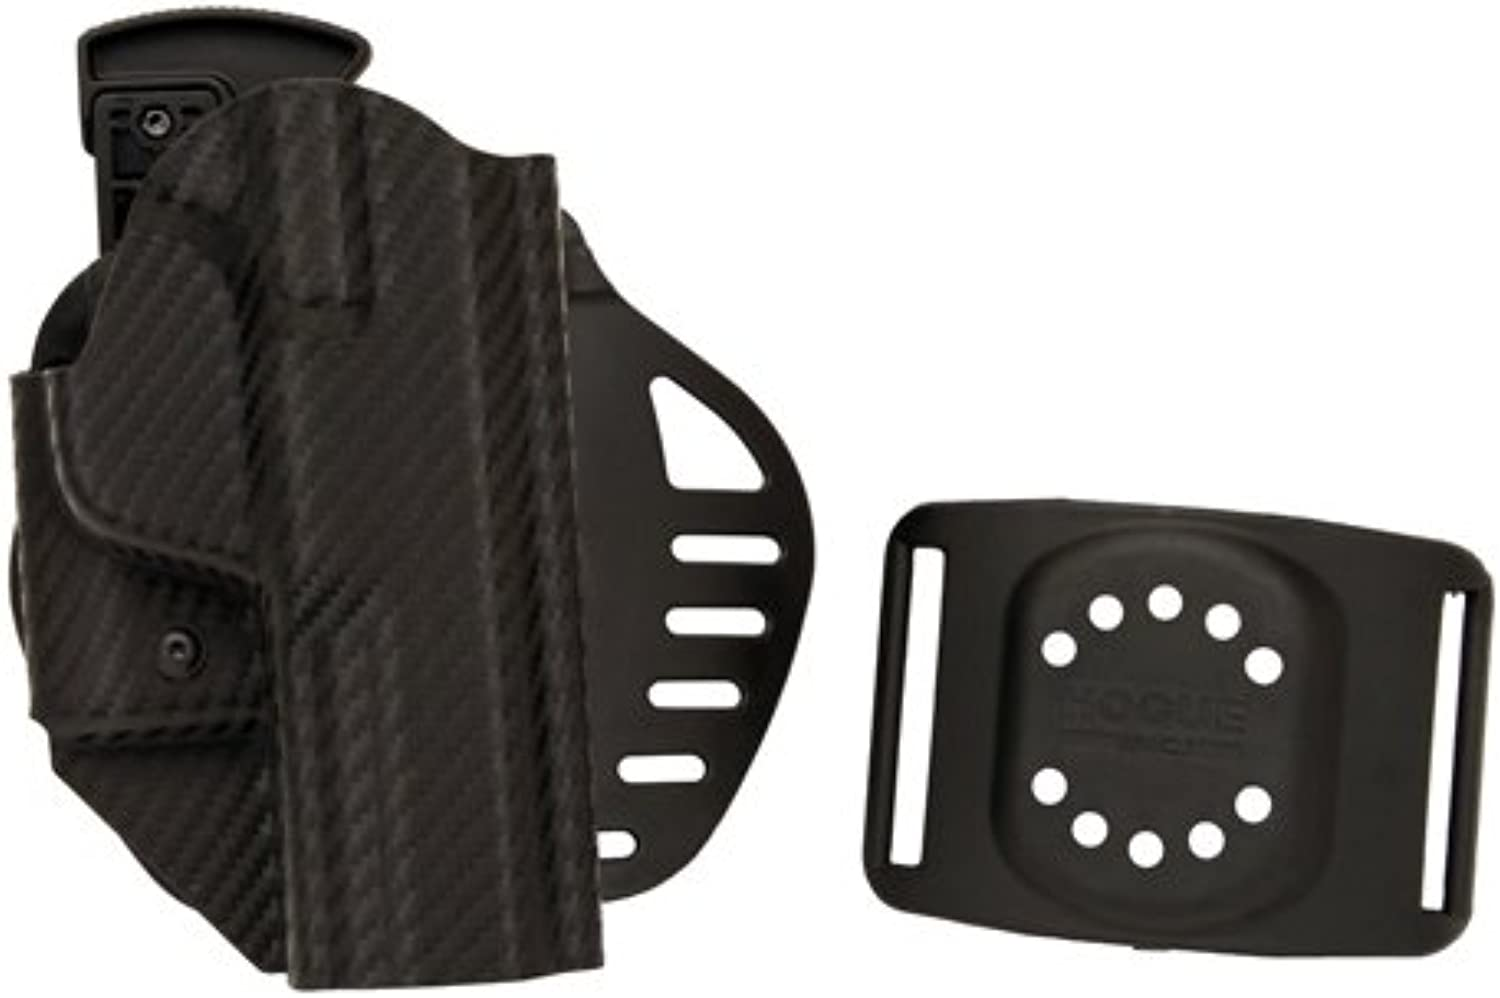 Hogue Powerspeed ARS Stage 1 CarbonFiber Weave Holster, C12, S&W M&P 9, Right Hand